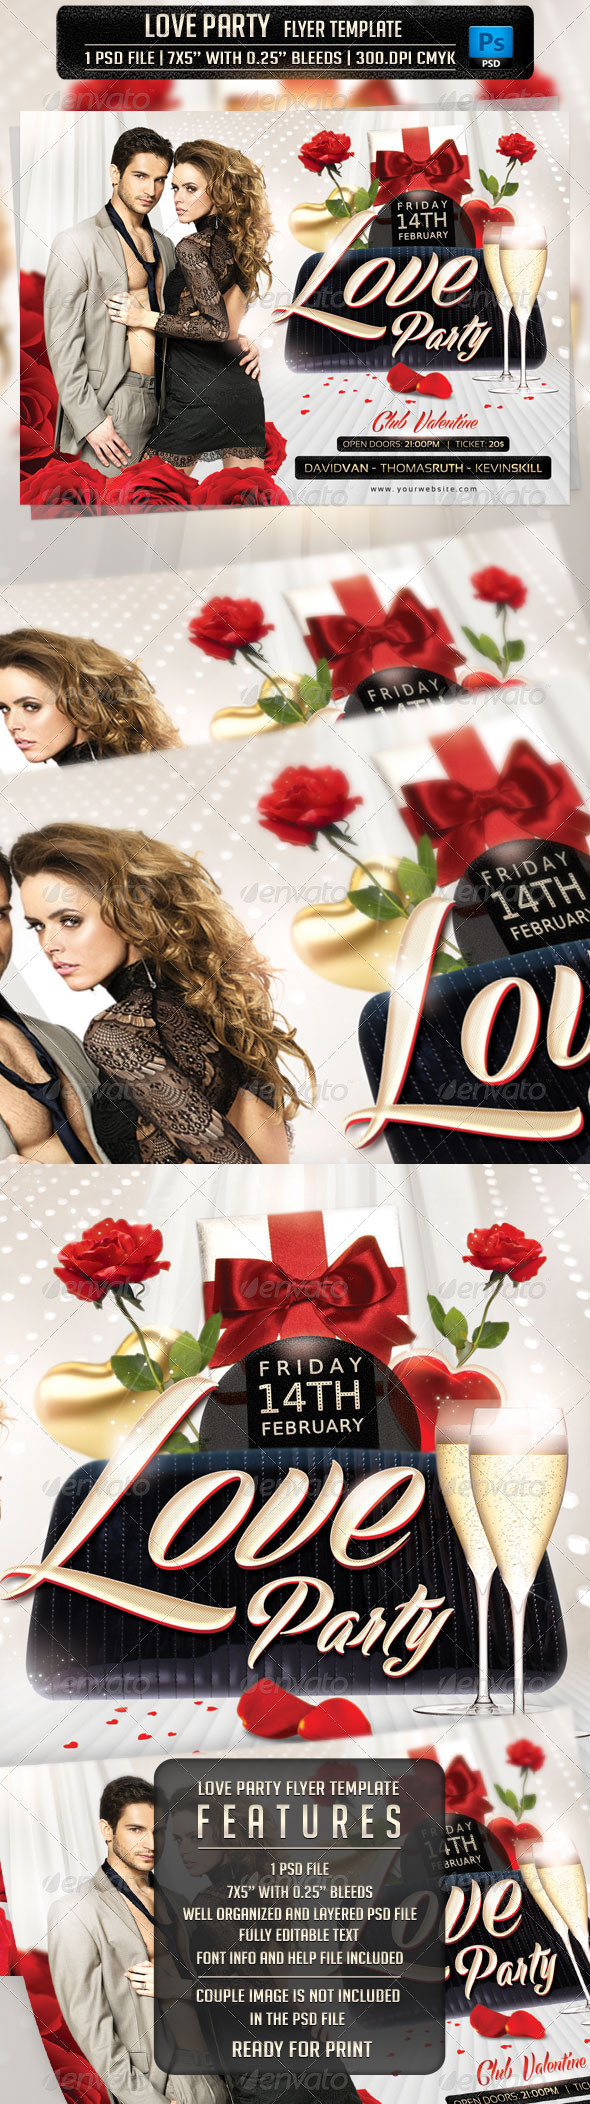 Love Party Flyer Template - Flyers Print Templates